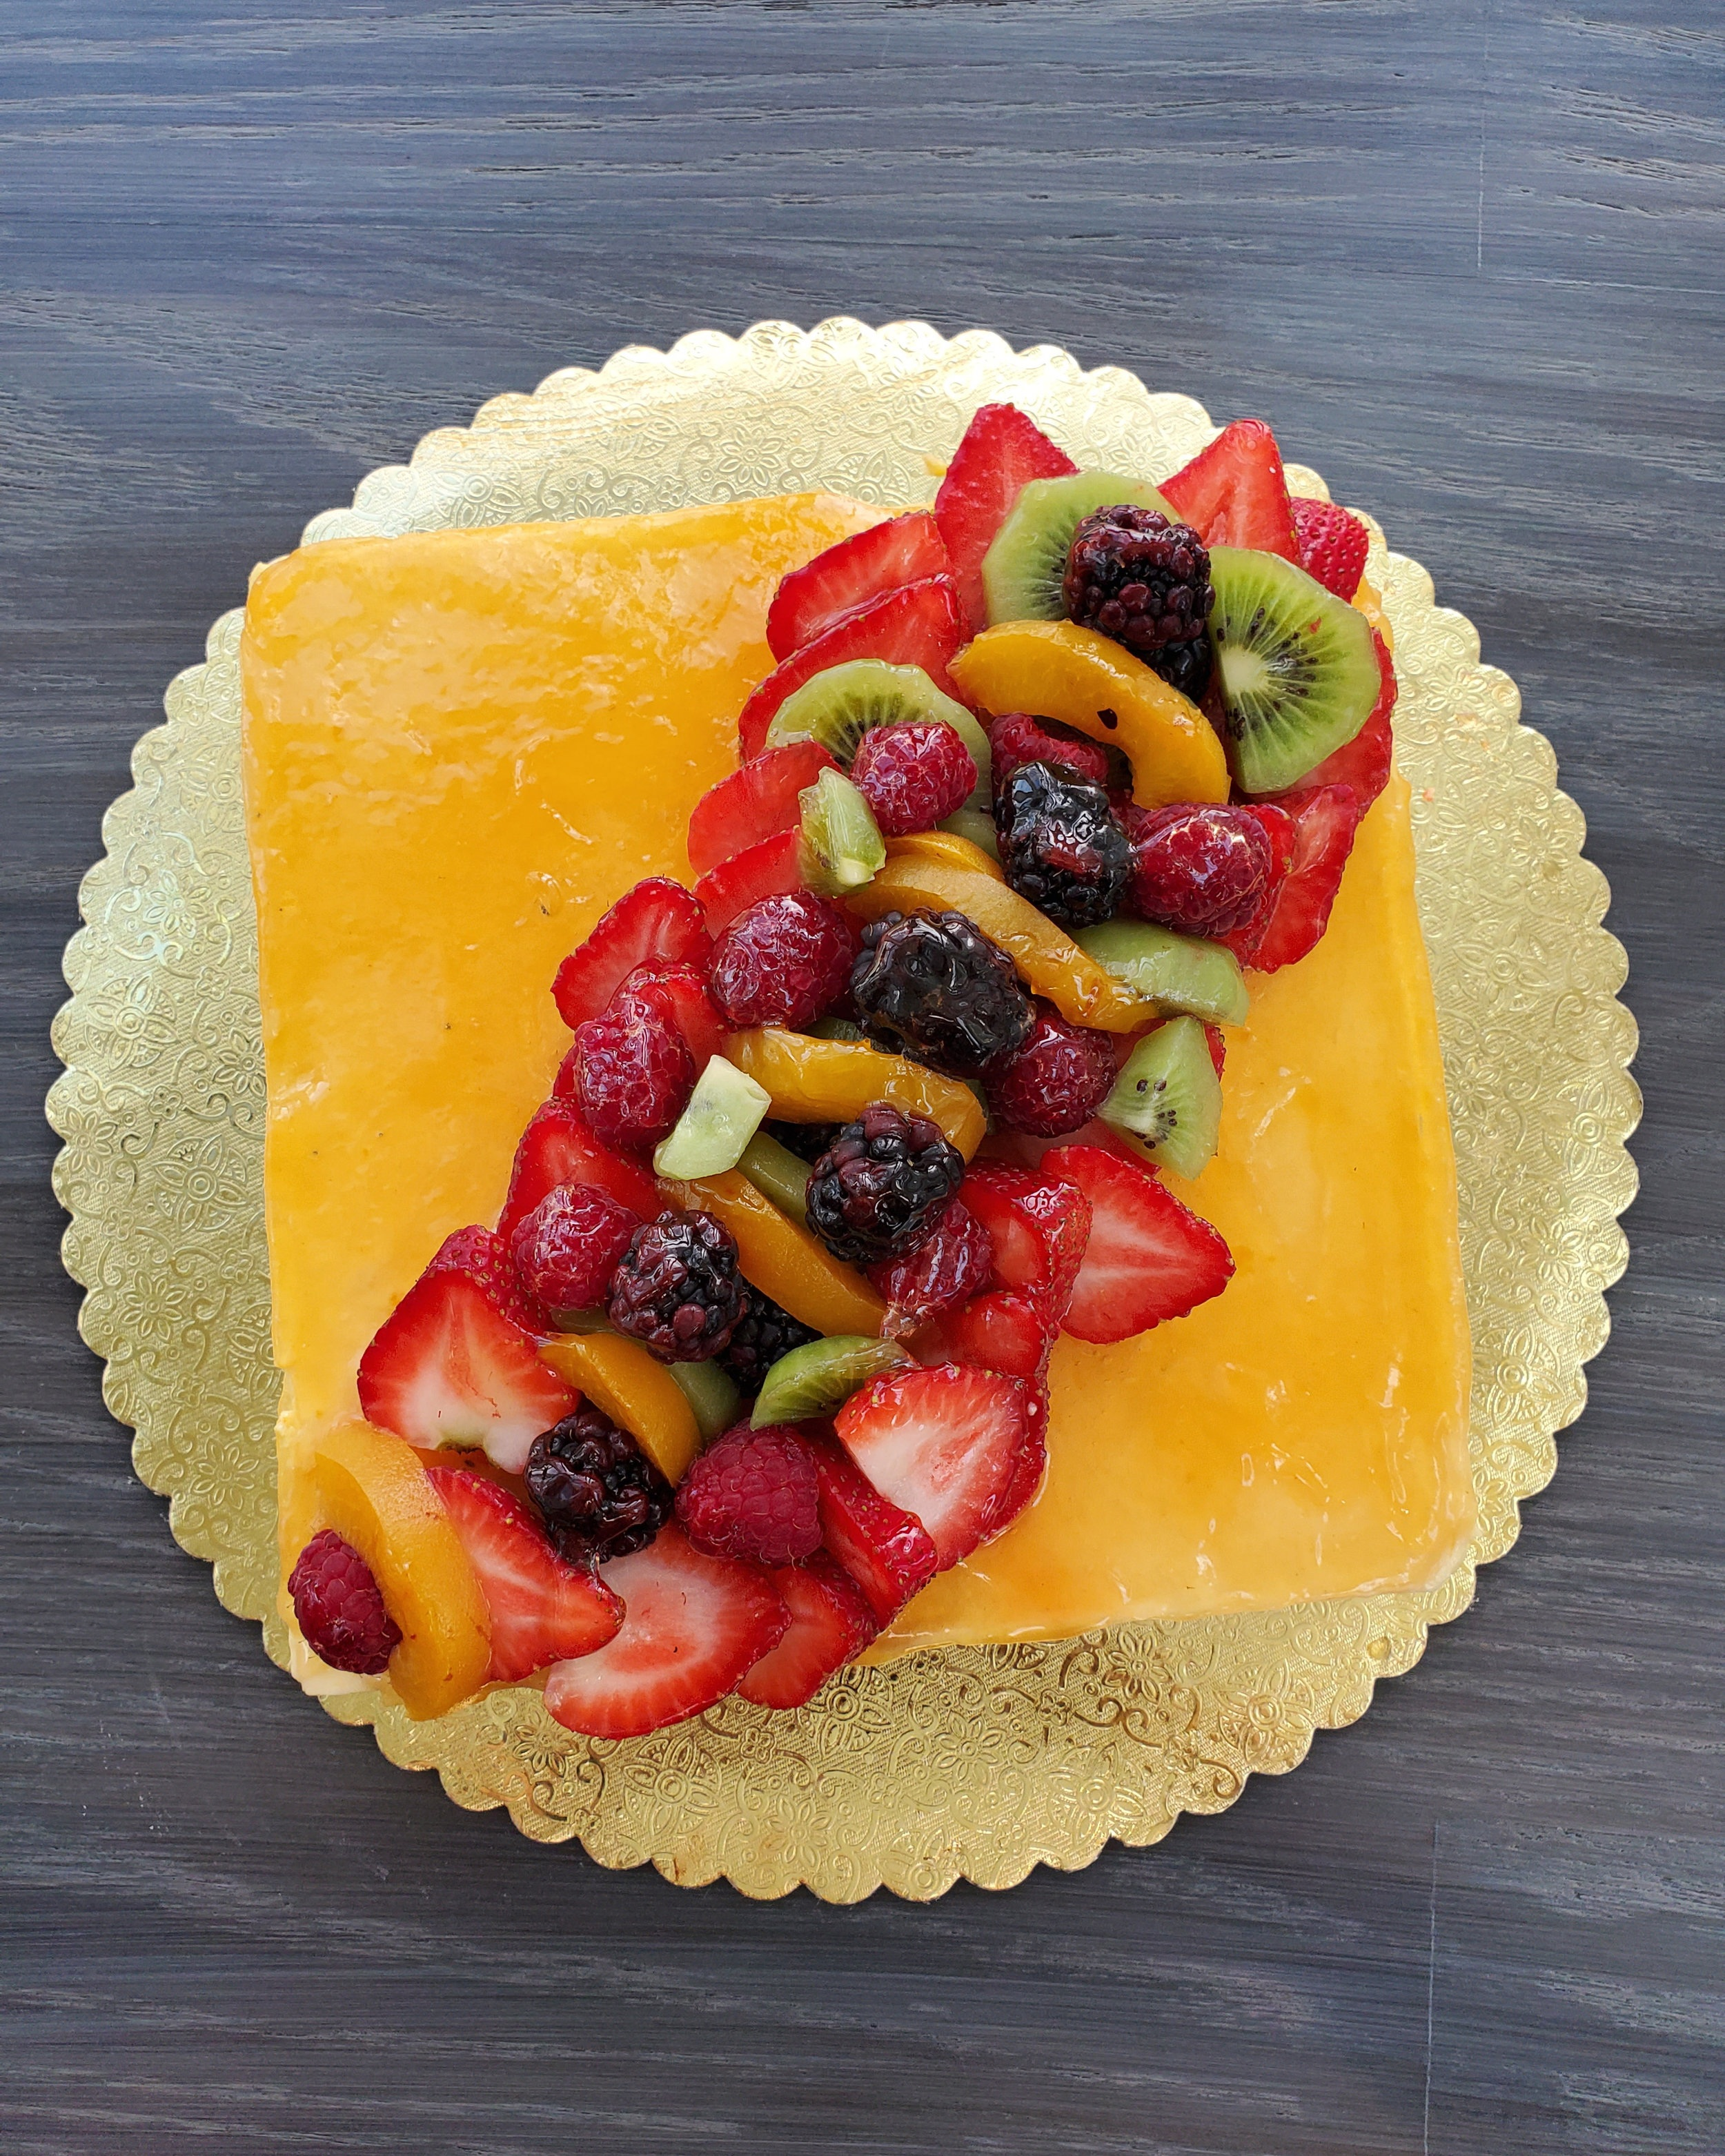 MANGO MOUSSE - Sponge cake with layers of mango mousse